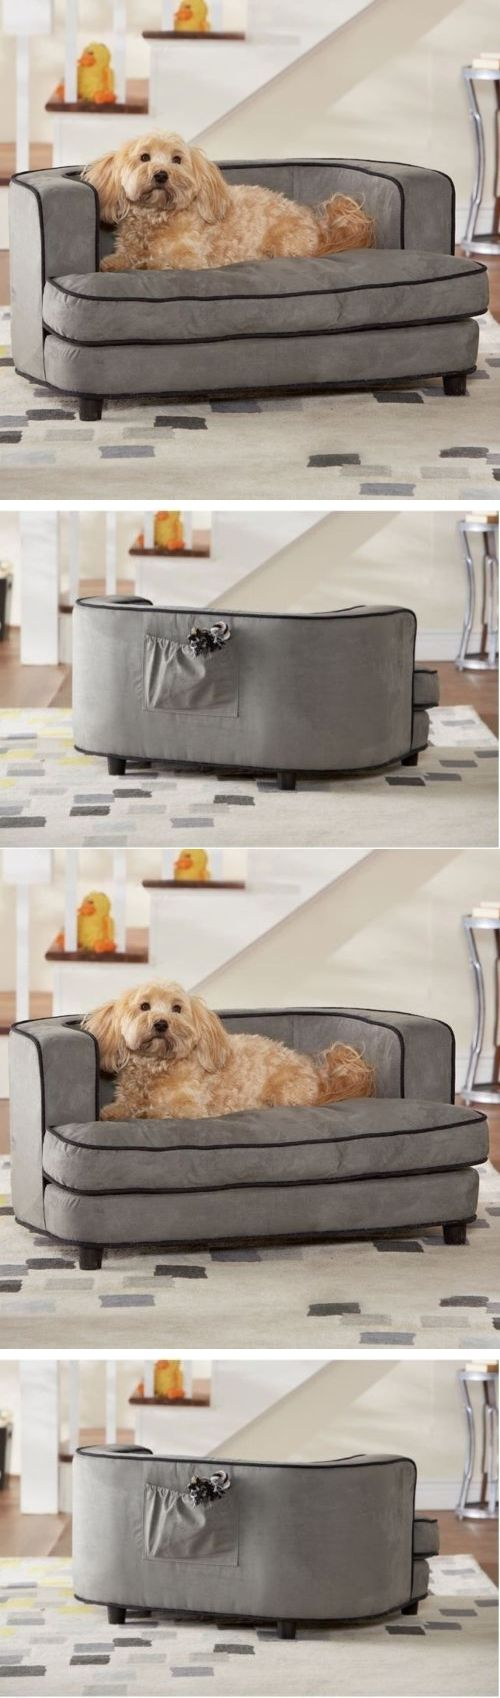 Beds 20744: Big Dog Bed Pet Couch Elevated Sofa Lounge Sleeper Cushion Ultra Plush Cover BUY IT NOW ONLY: $156.99